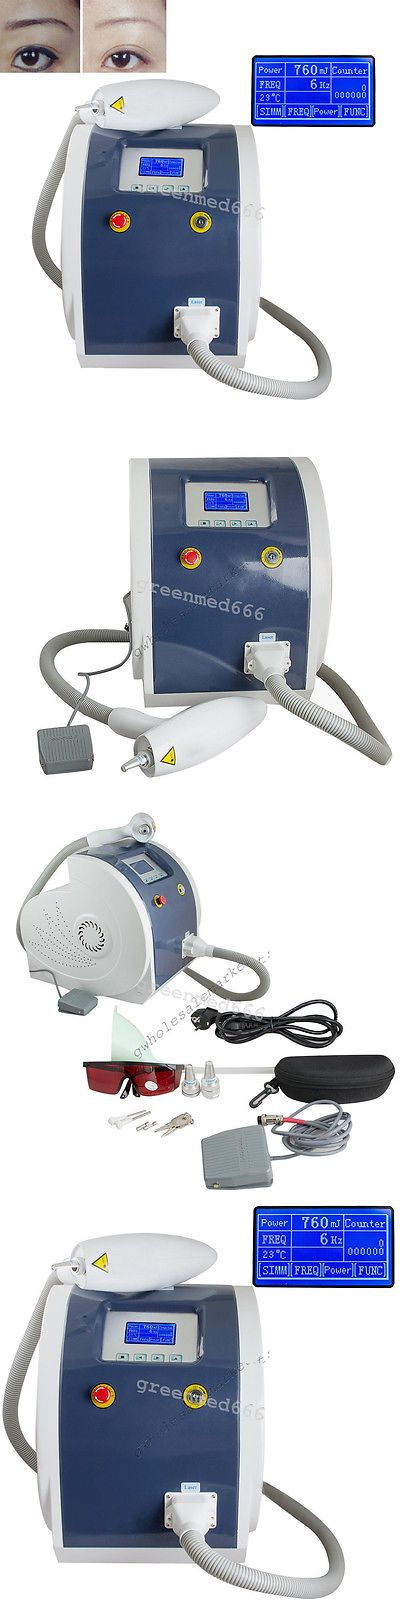 Tattoo Removal Machines: Portable Laser Tattoo Eyebrow Pigment Removal Beauty Spa Machine Pigment Remove BUY IT NOW ONLY: $1036.8